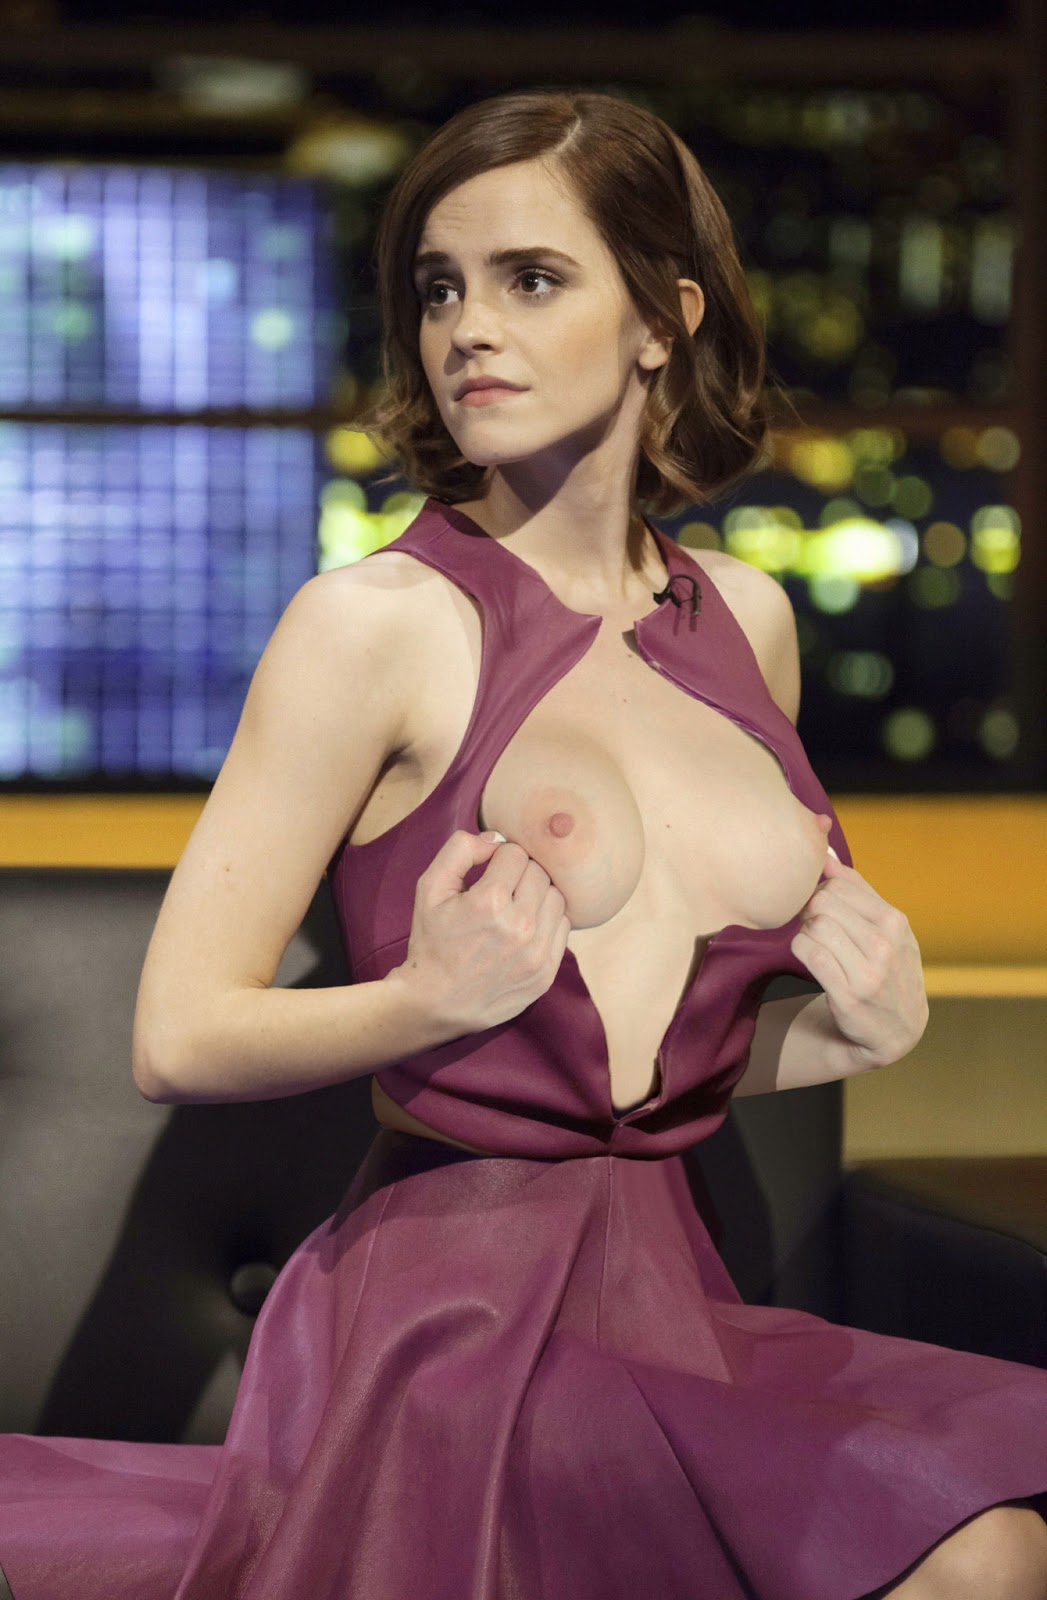 Best boobs in tv